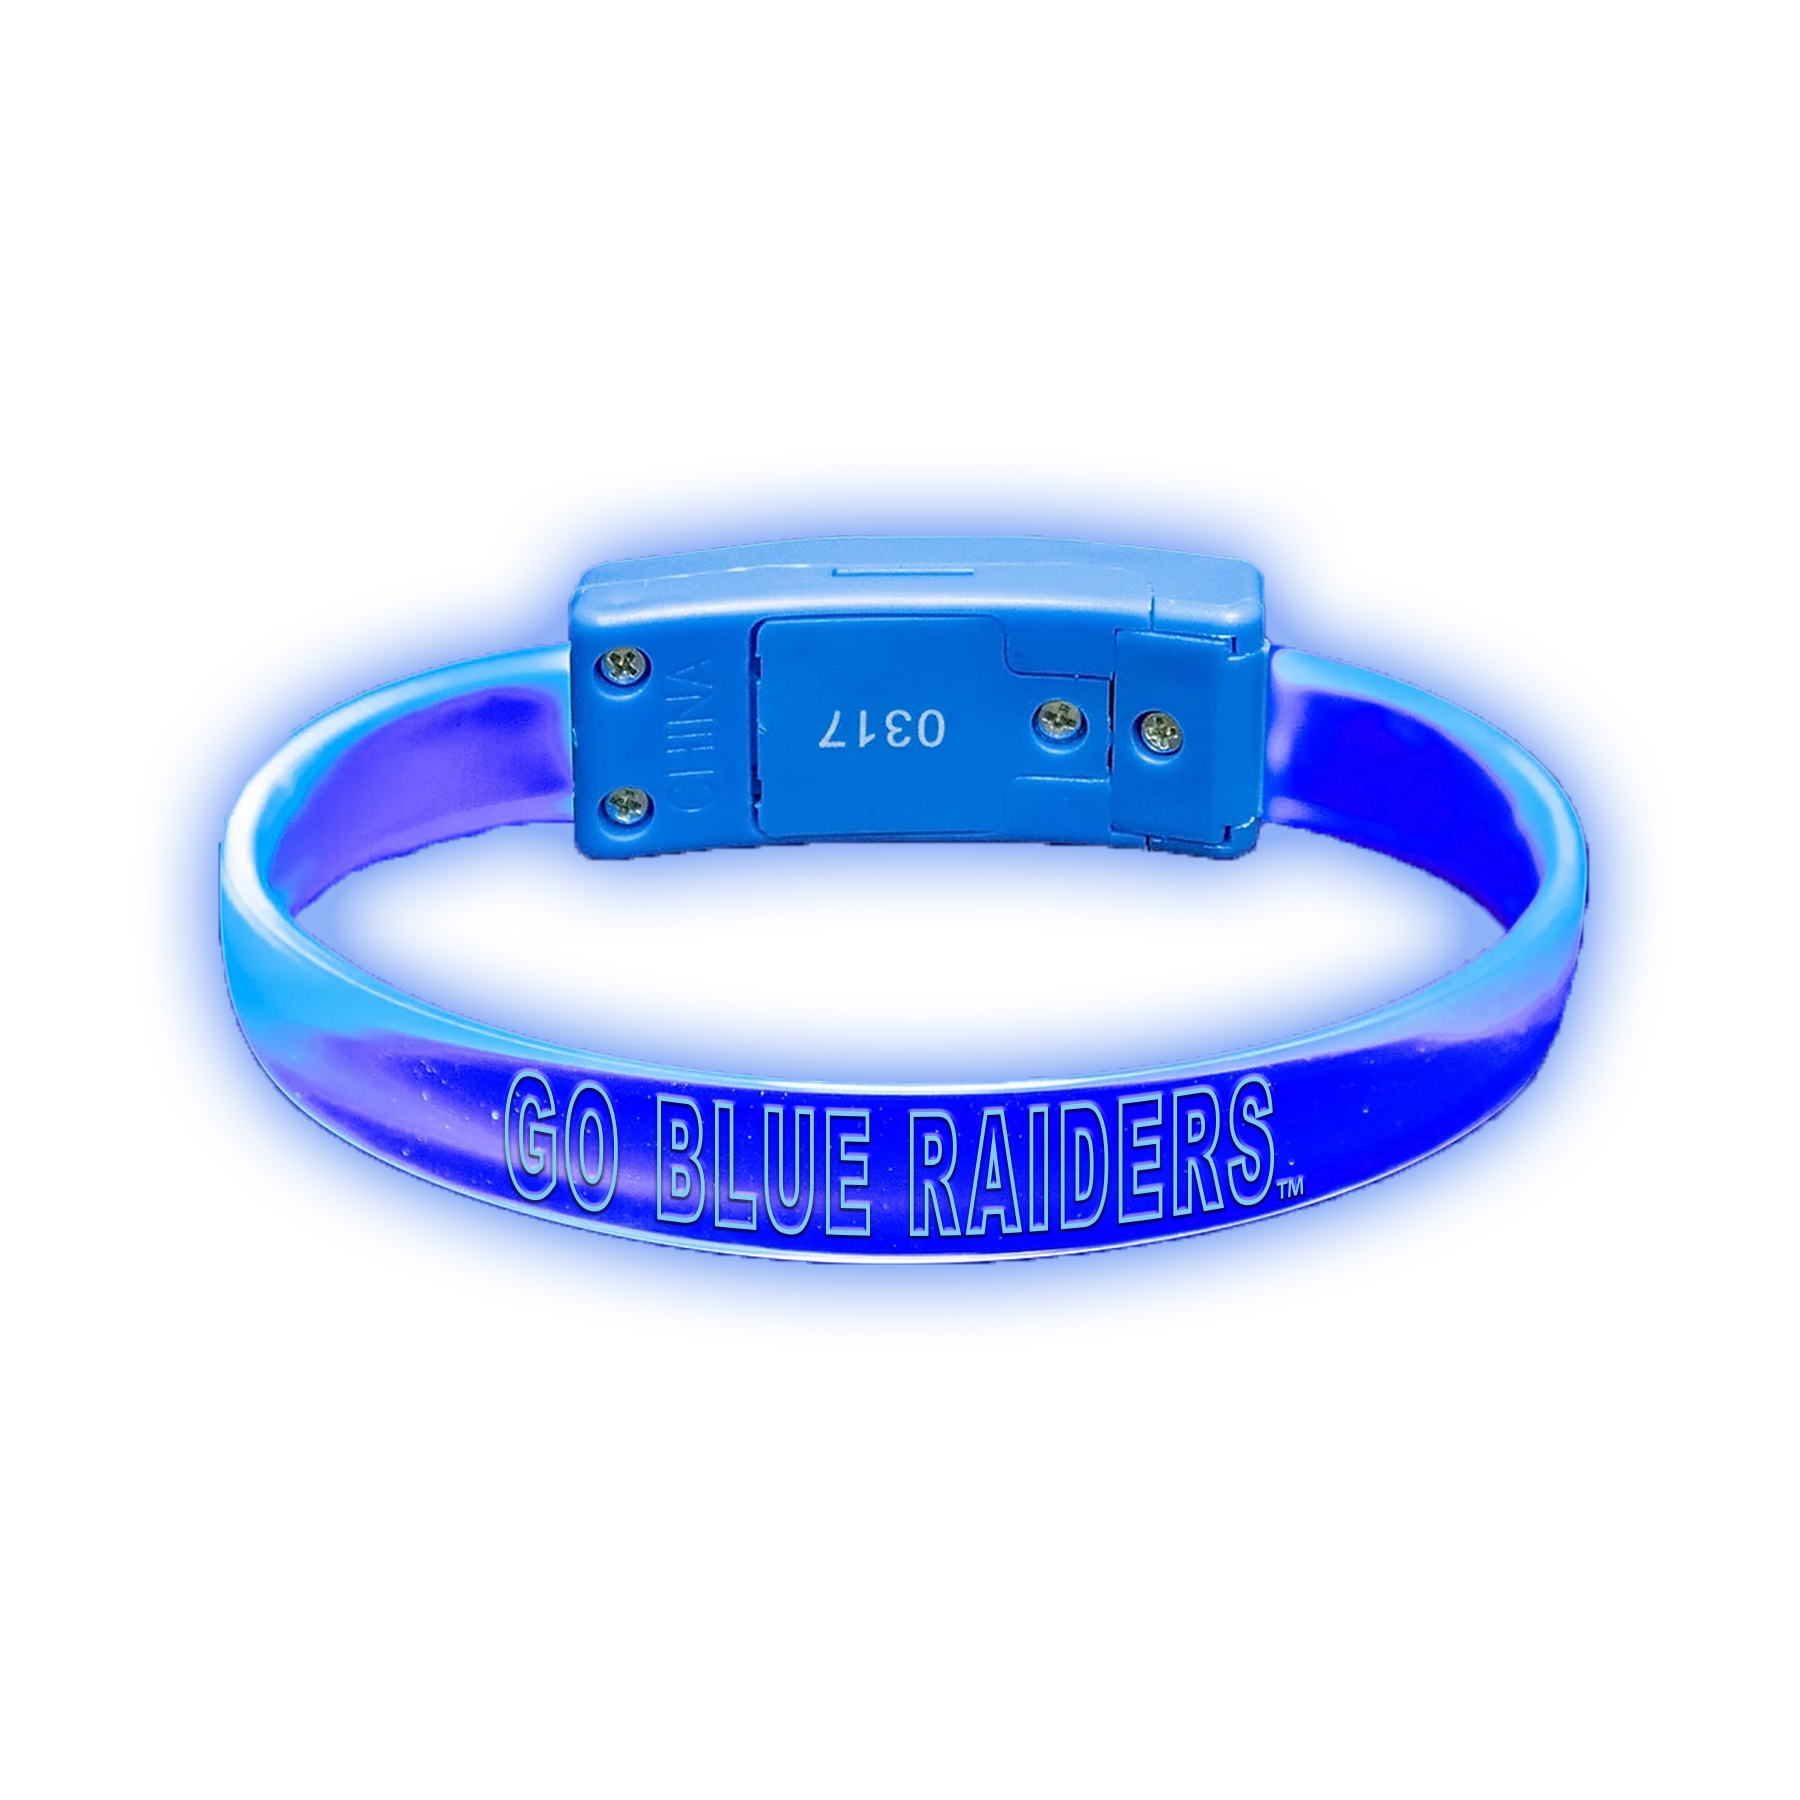 Go Blue Raiders Lightning LED Wristband